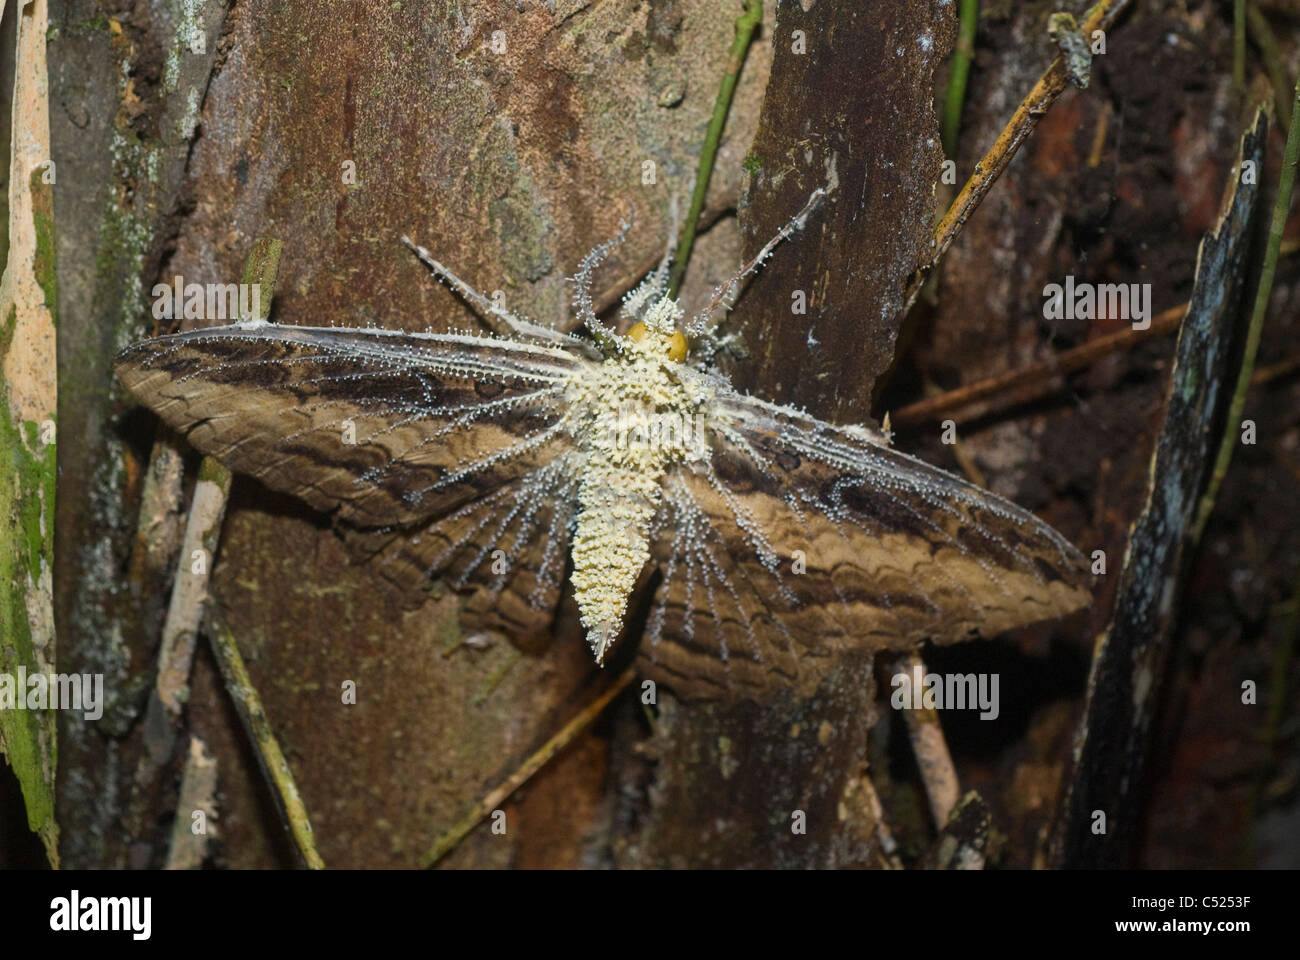 Moth consumed by Cordyceps fungus in the Amazon rainforest in Loreto Peru - Stock Image